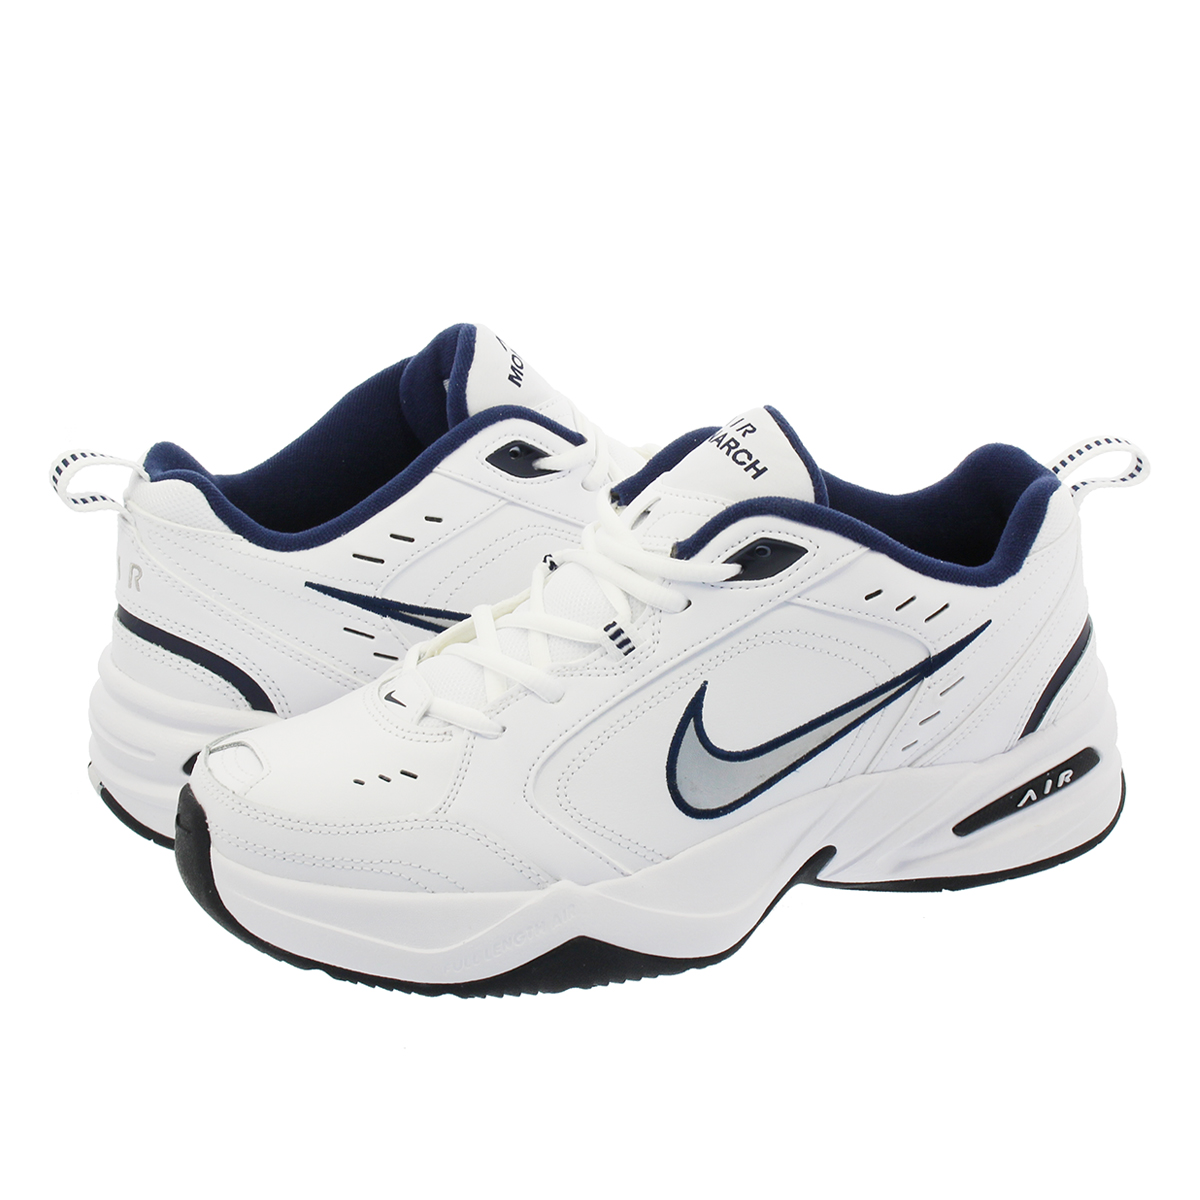 61be24f5d8b7 SELECT SHOP LOWTEX  NIKE AIR MONARCH IV ナイキエアモナーク 4 WHITE ...